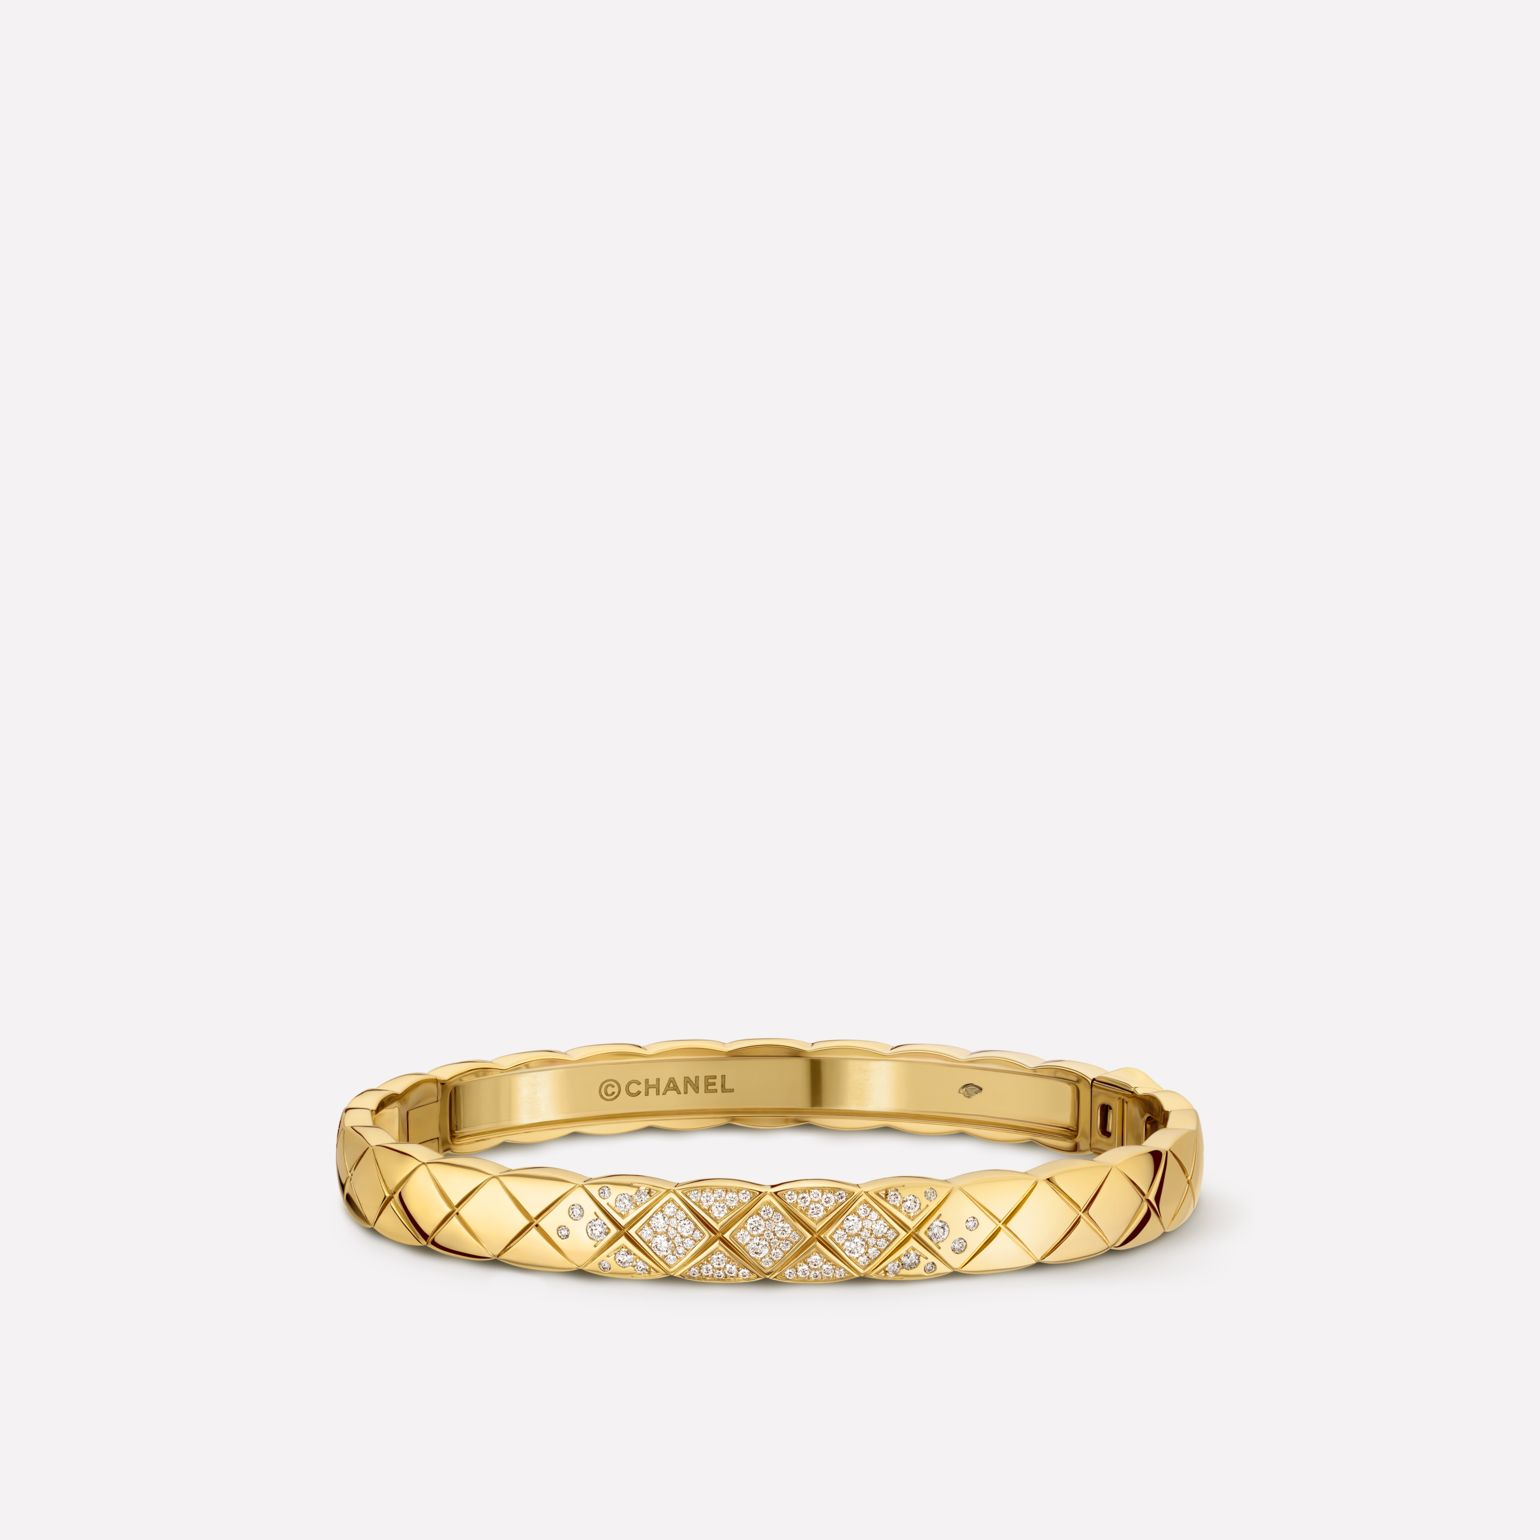 Coco Crush Bracelet Coco Crush bangle in 18K yellow gold and diamonds